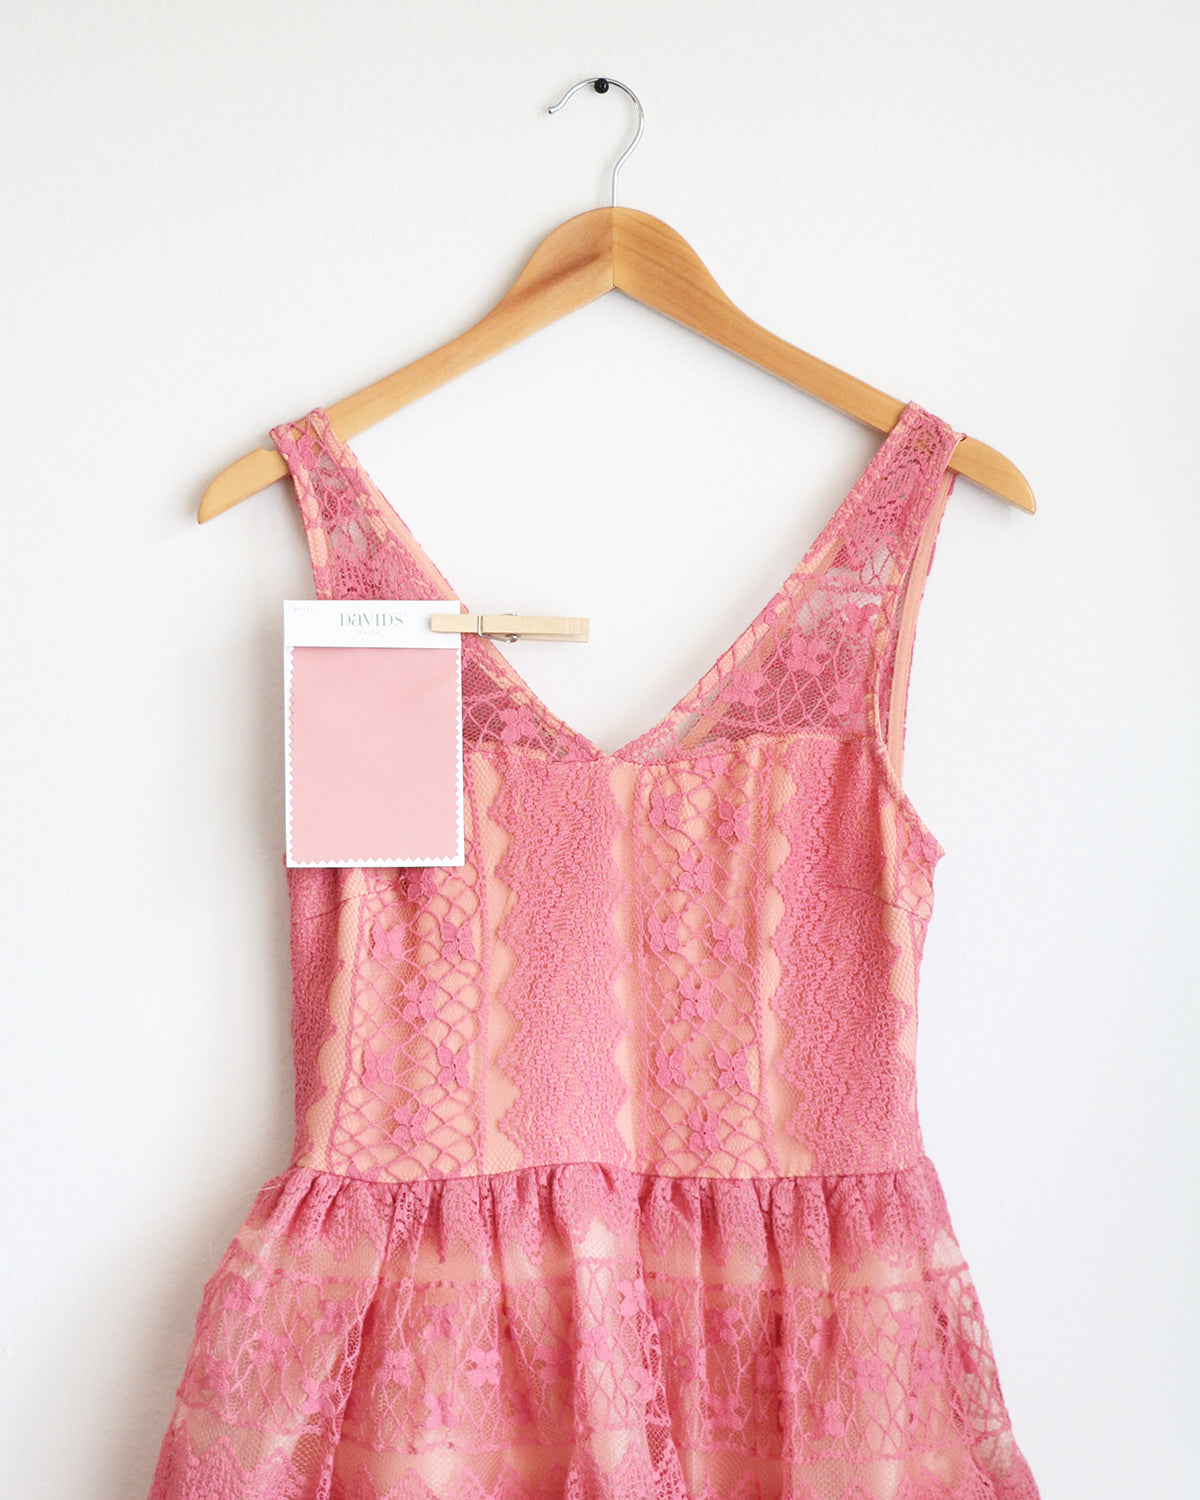 Apricity - RIVER Lace Dress in Dusty Rose Pink - David's Bridal Ballet bridesmaid dress swatch